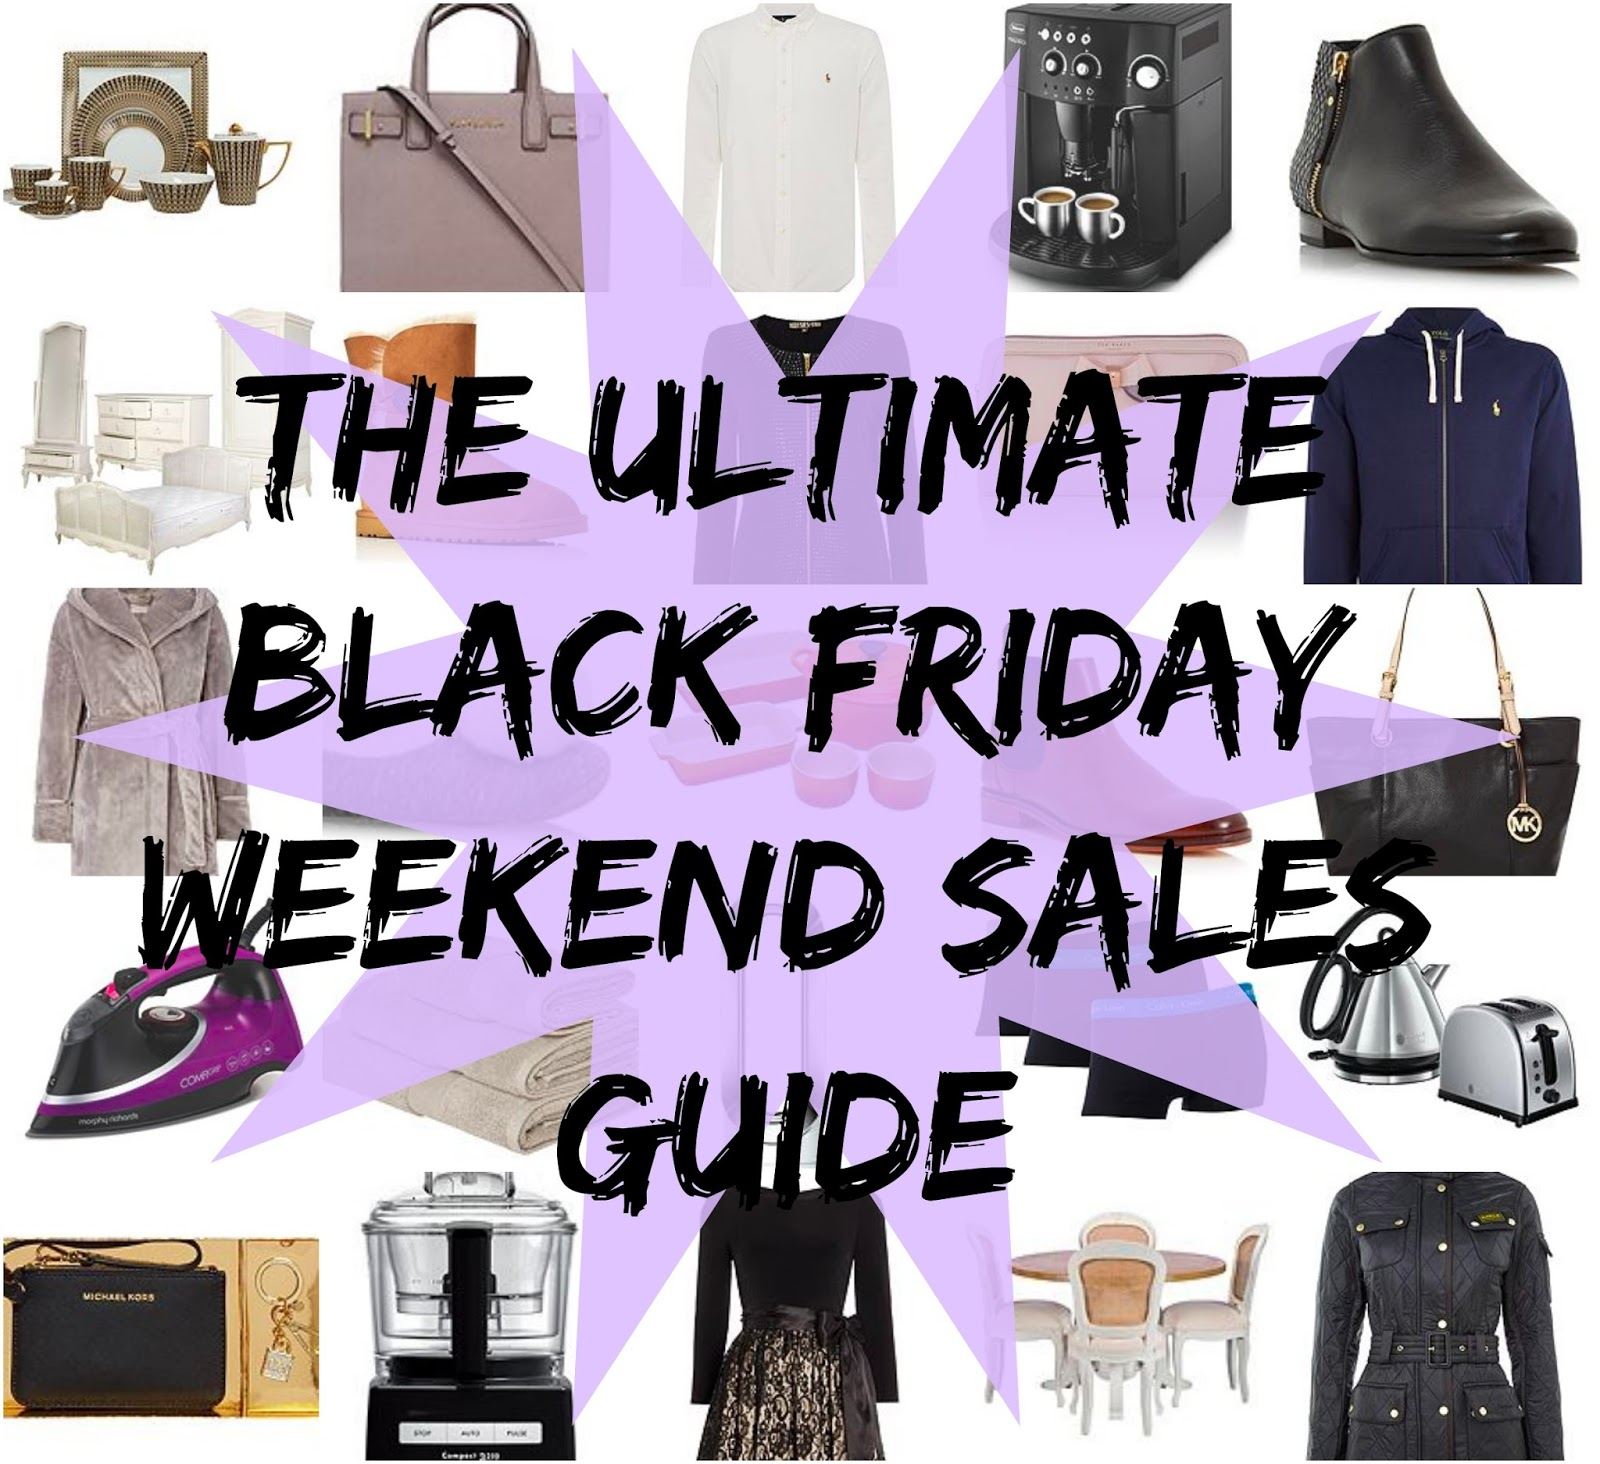 The ULTIMATE Guide To The Black Friday Weekend Sales & Discount Codes Image